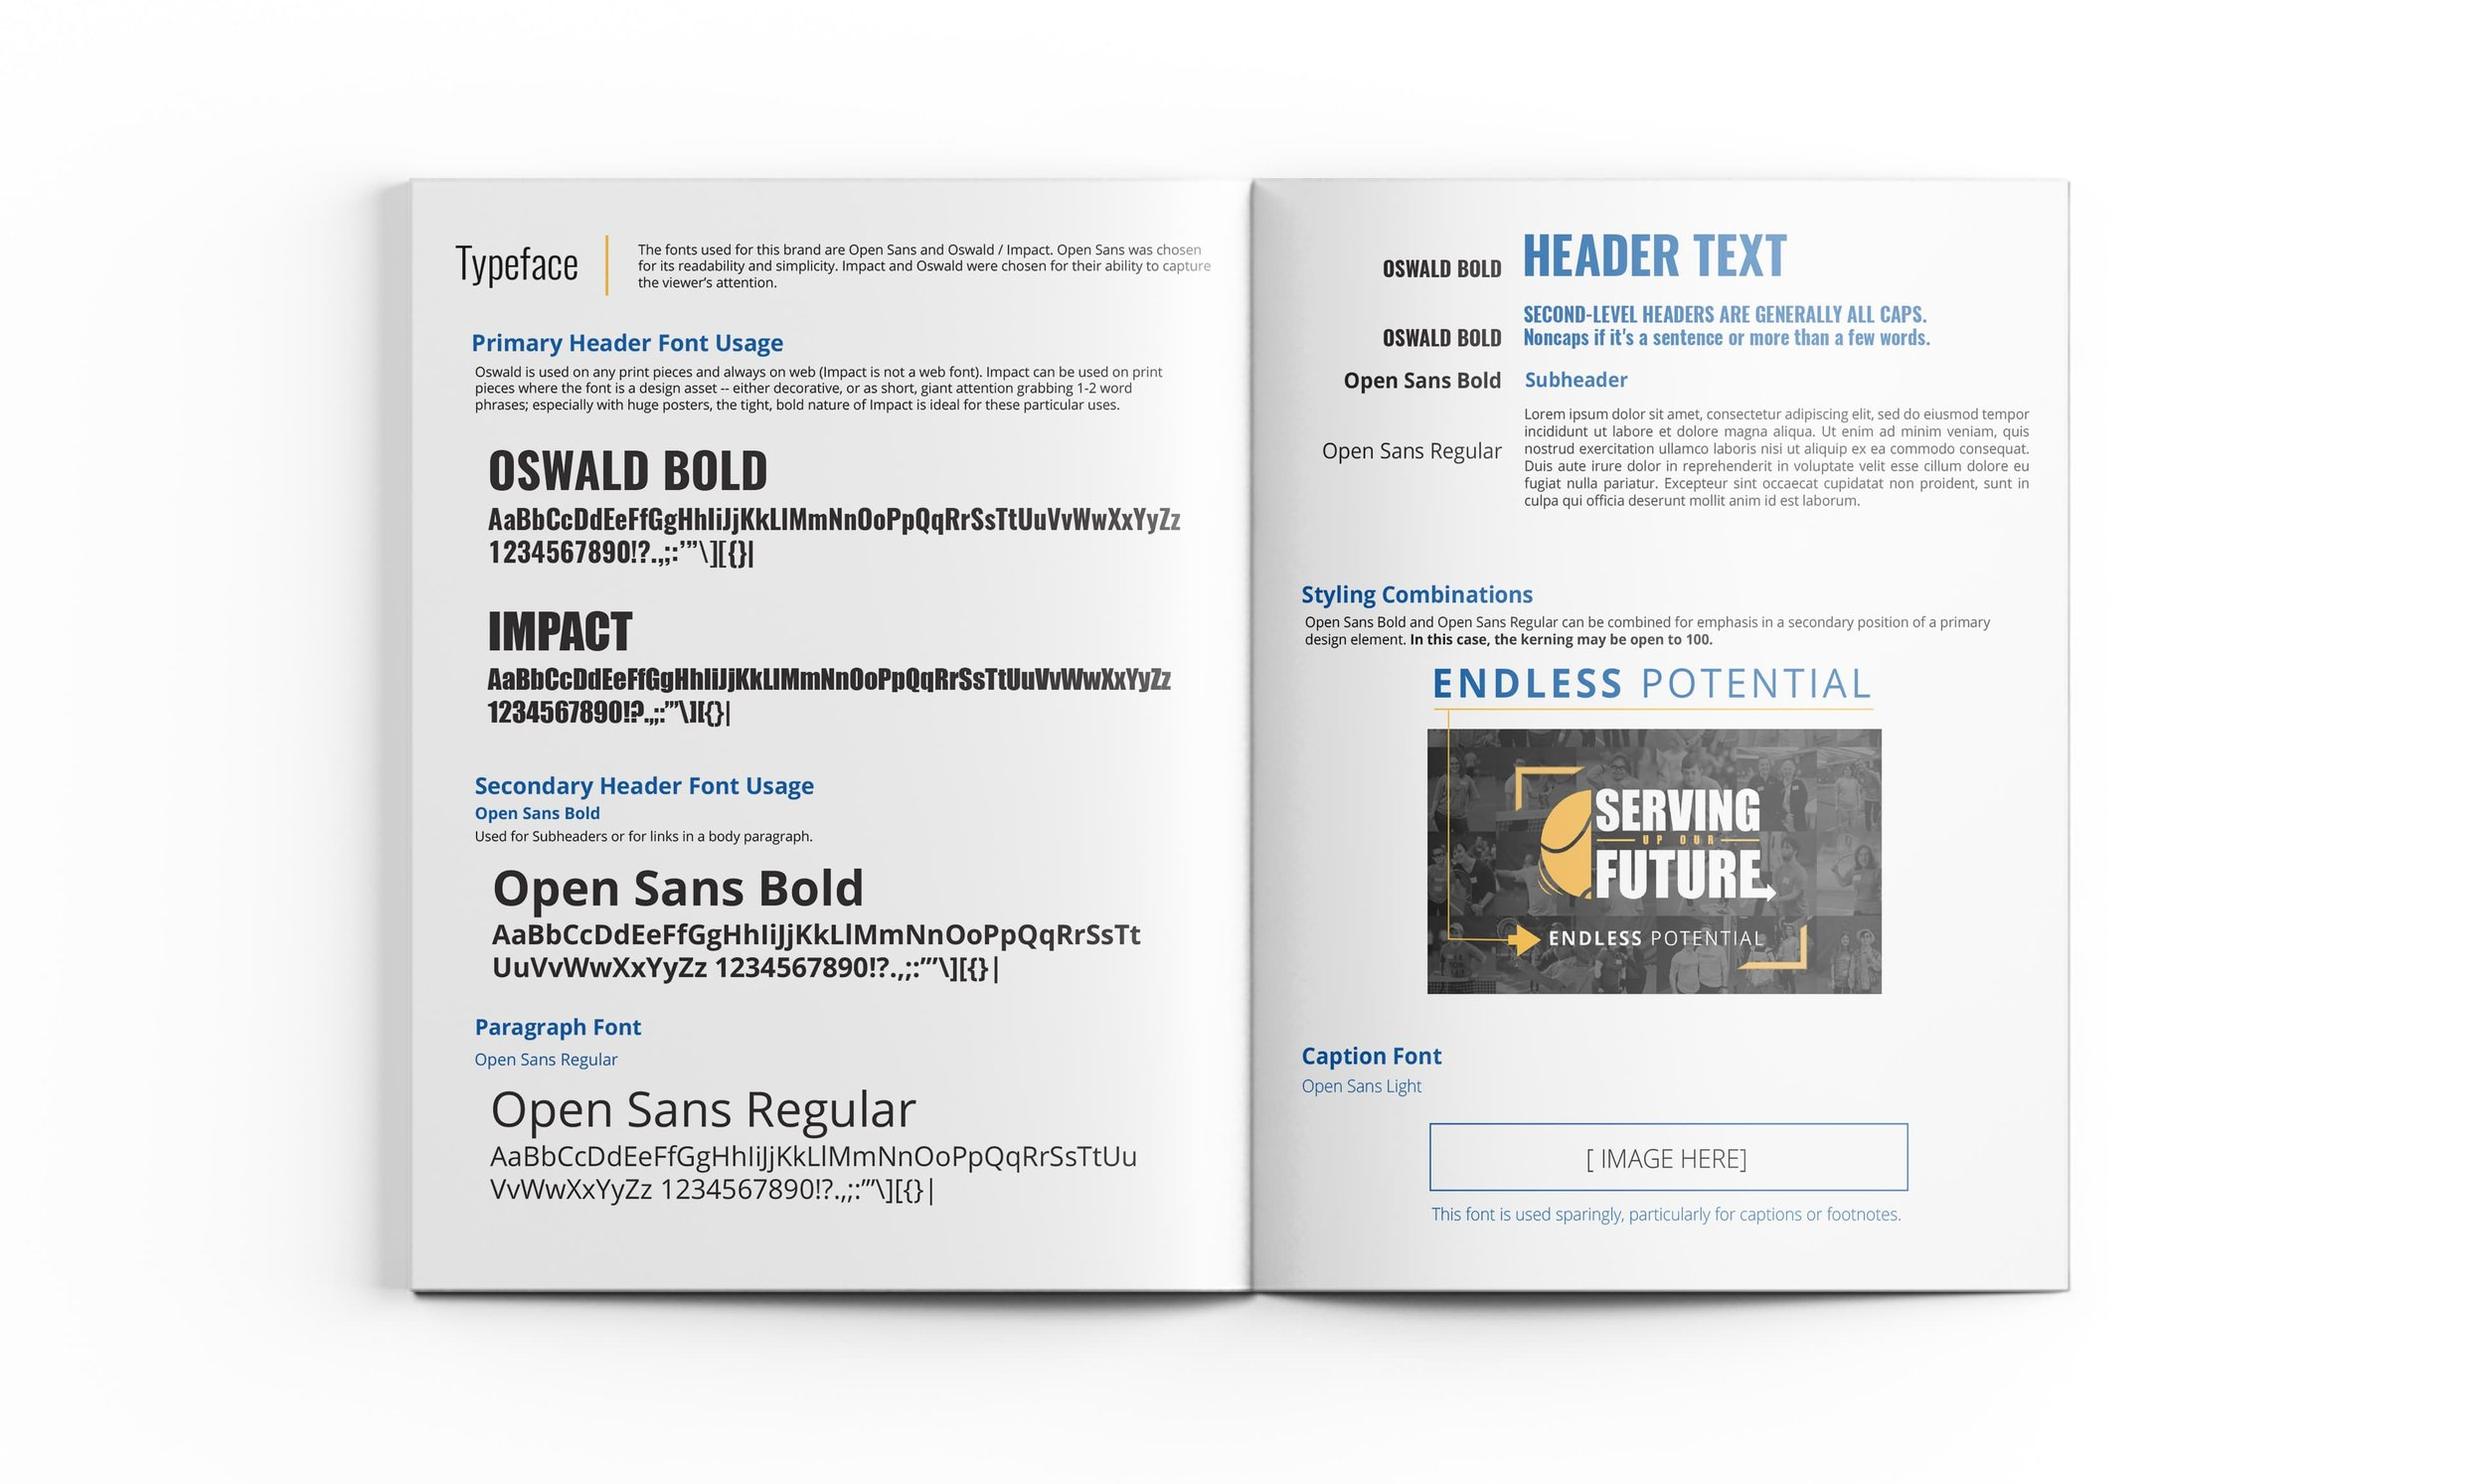 Buddy Up Tennis Brand Guide Mockup – Inside Typeface Pages.jpg